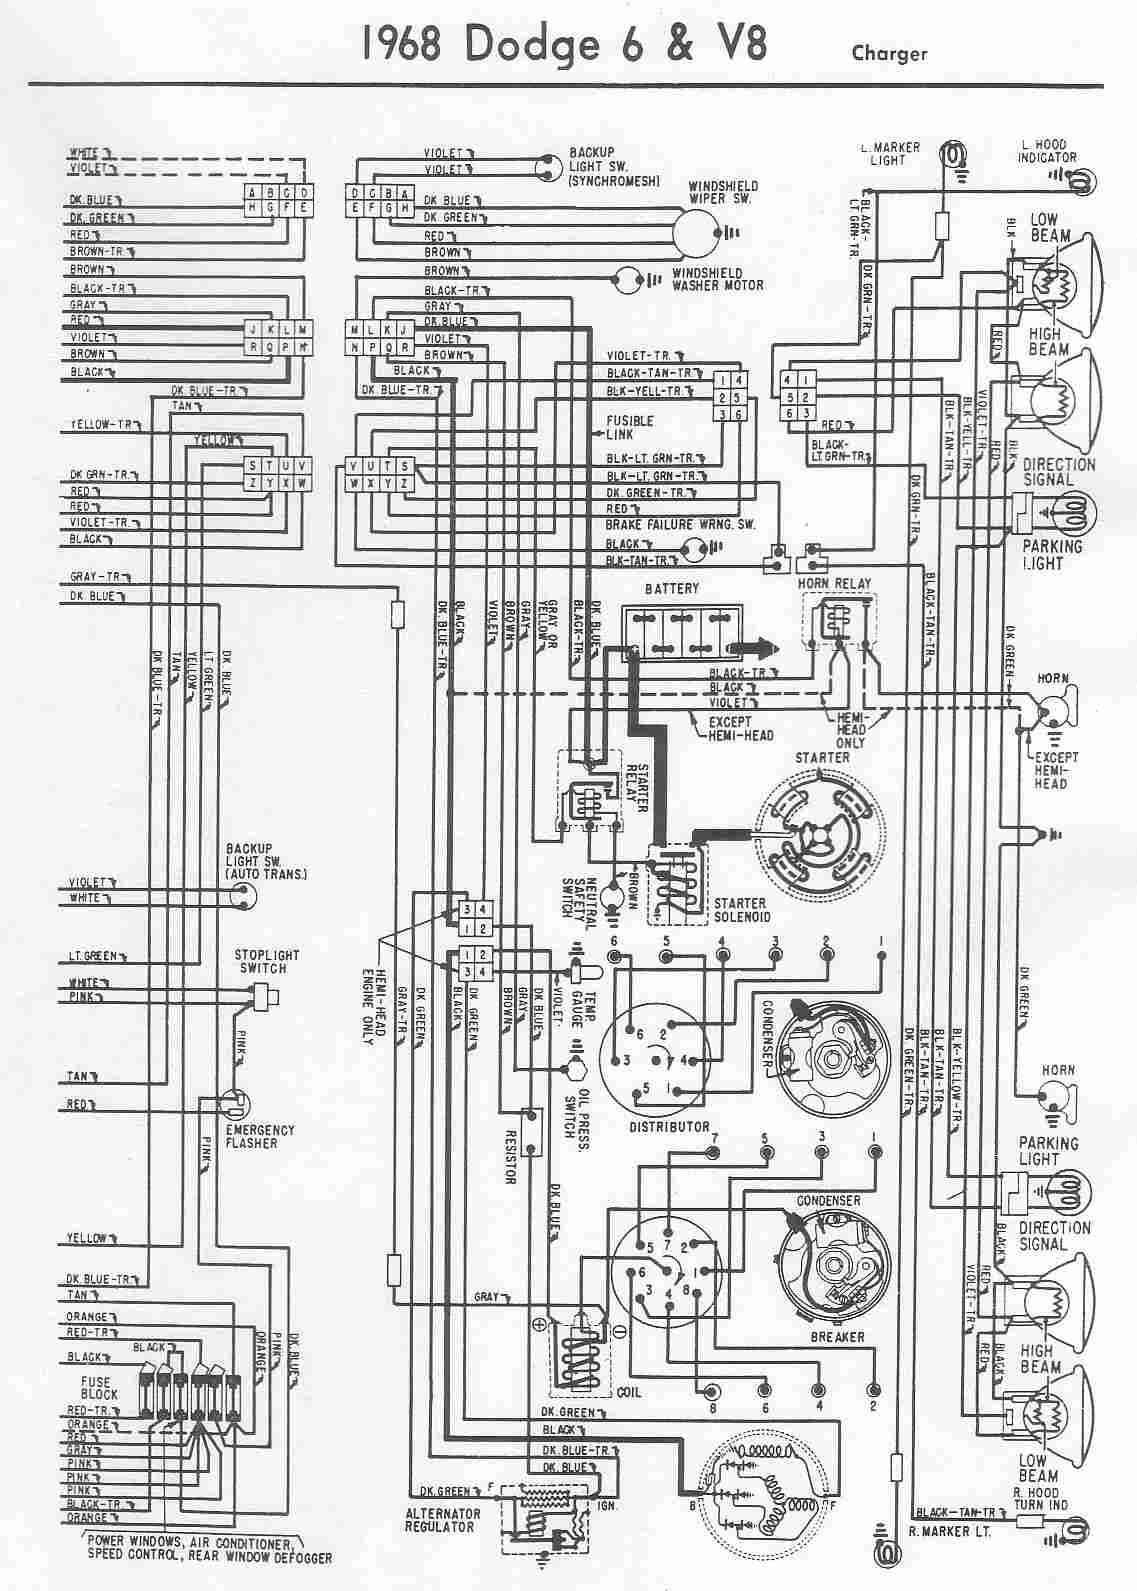 Dodge Car Manuals Wiring Diagrams Pdf Fault Codes Engine Download